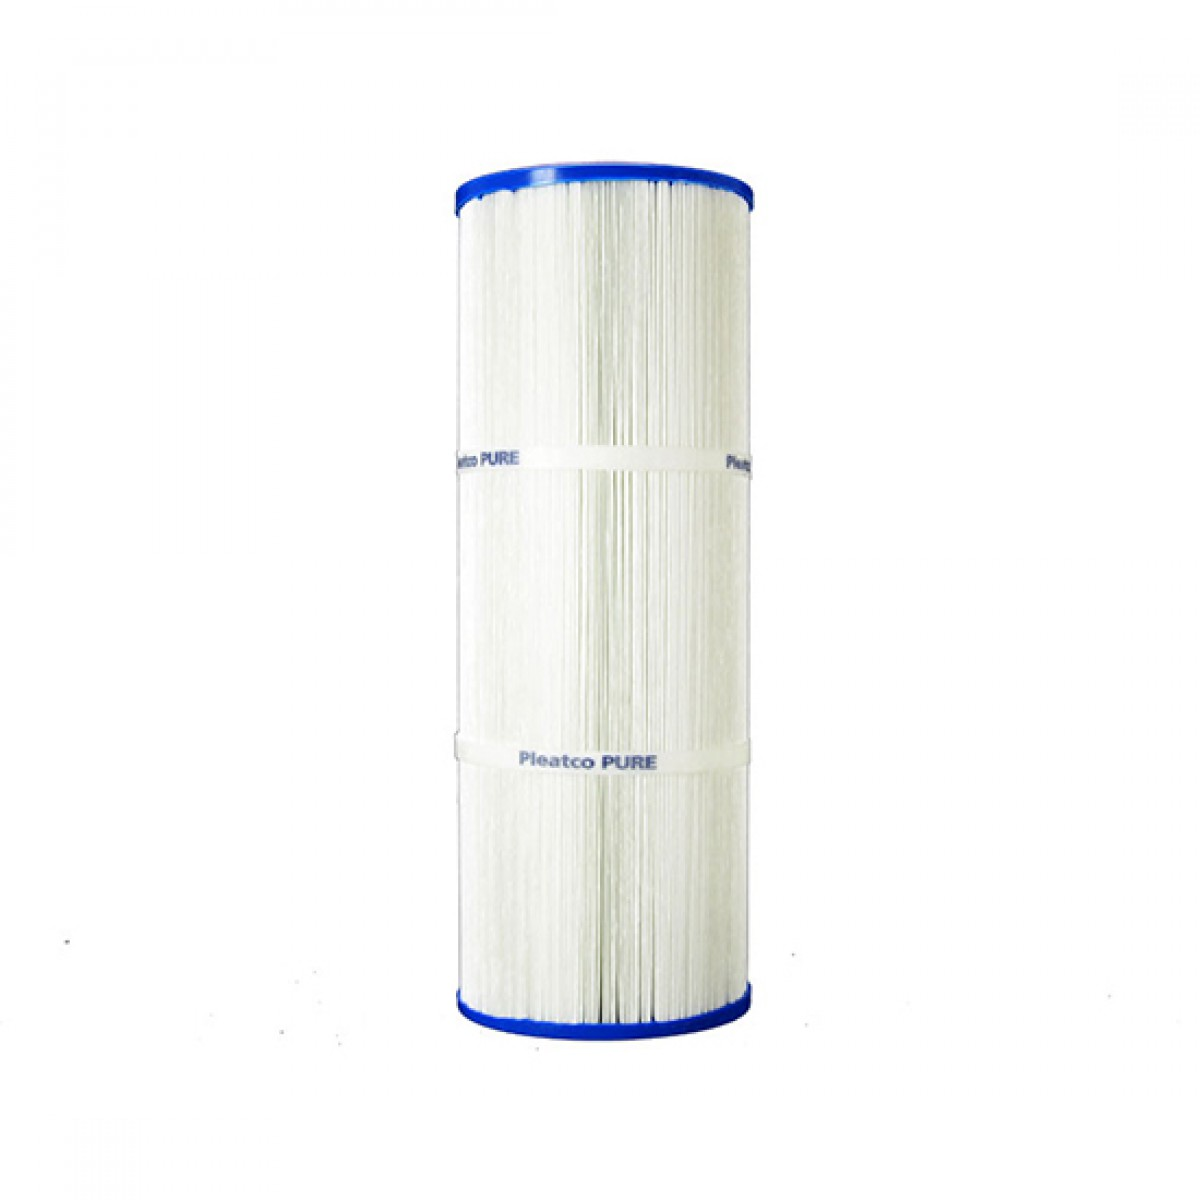 Pleatco Plbs75 M Replacement Pool And Spa Filter